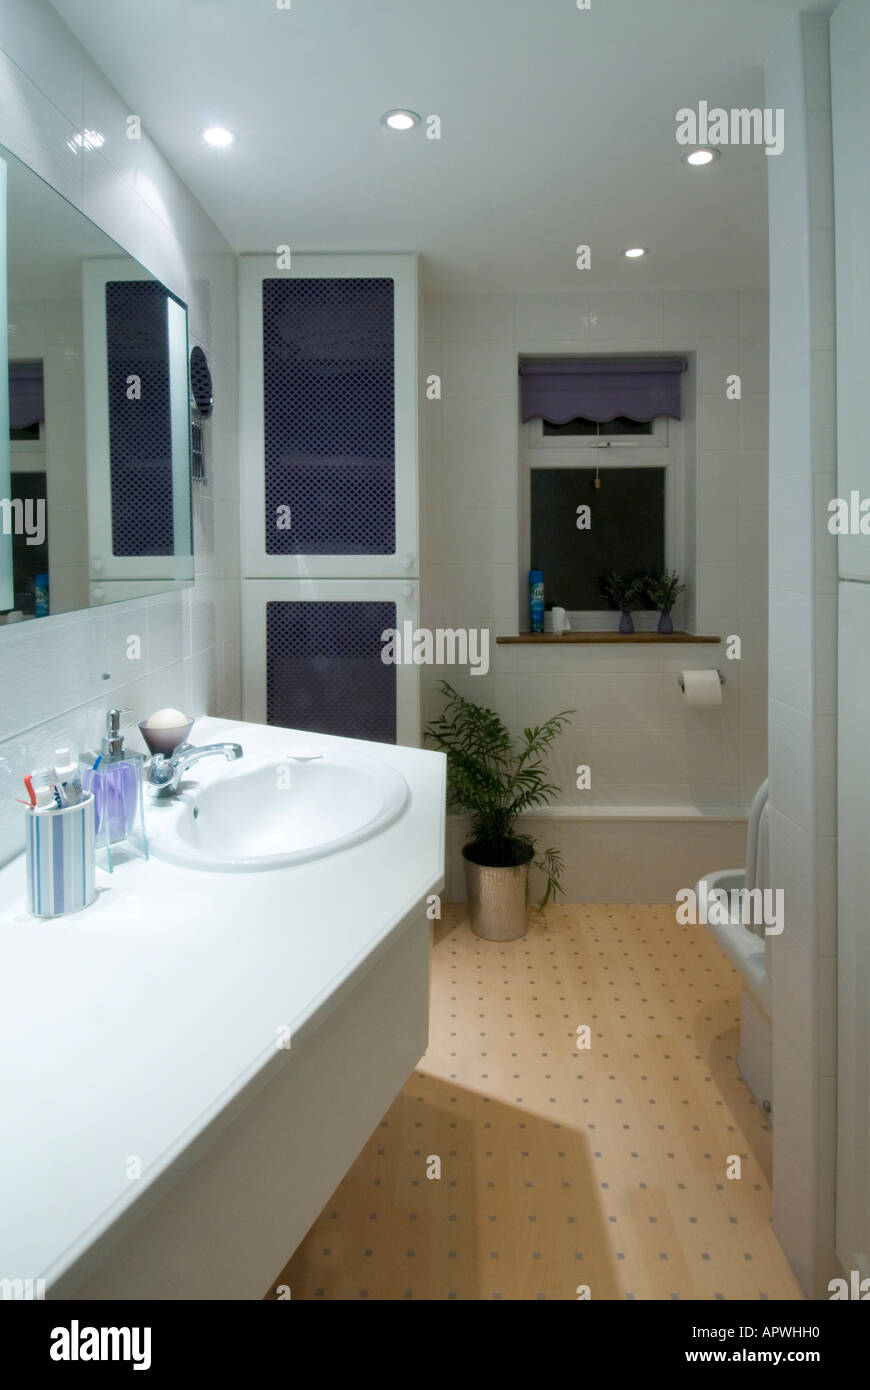 House interior bathroom vanity unit with mirror & wash hand basin includes boiler & airing cupboard make over new Stock Photo